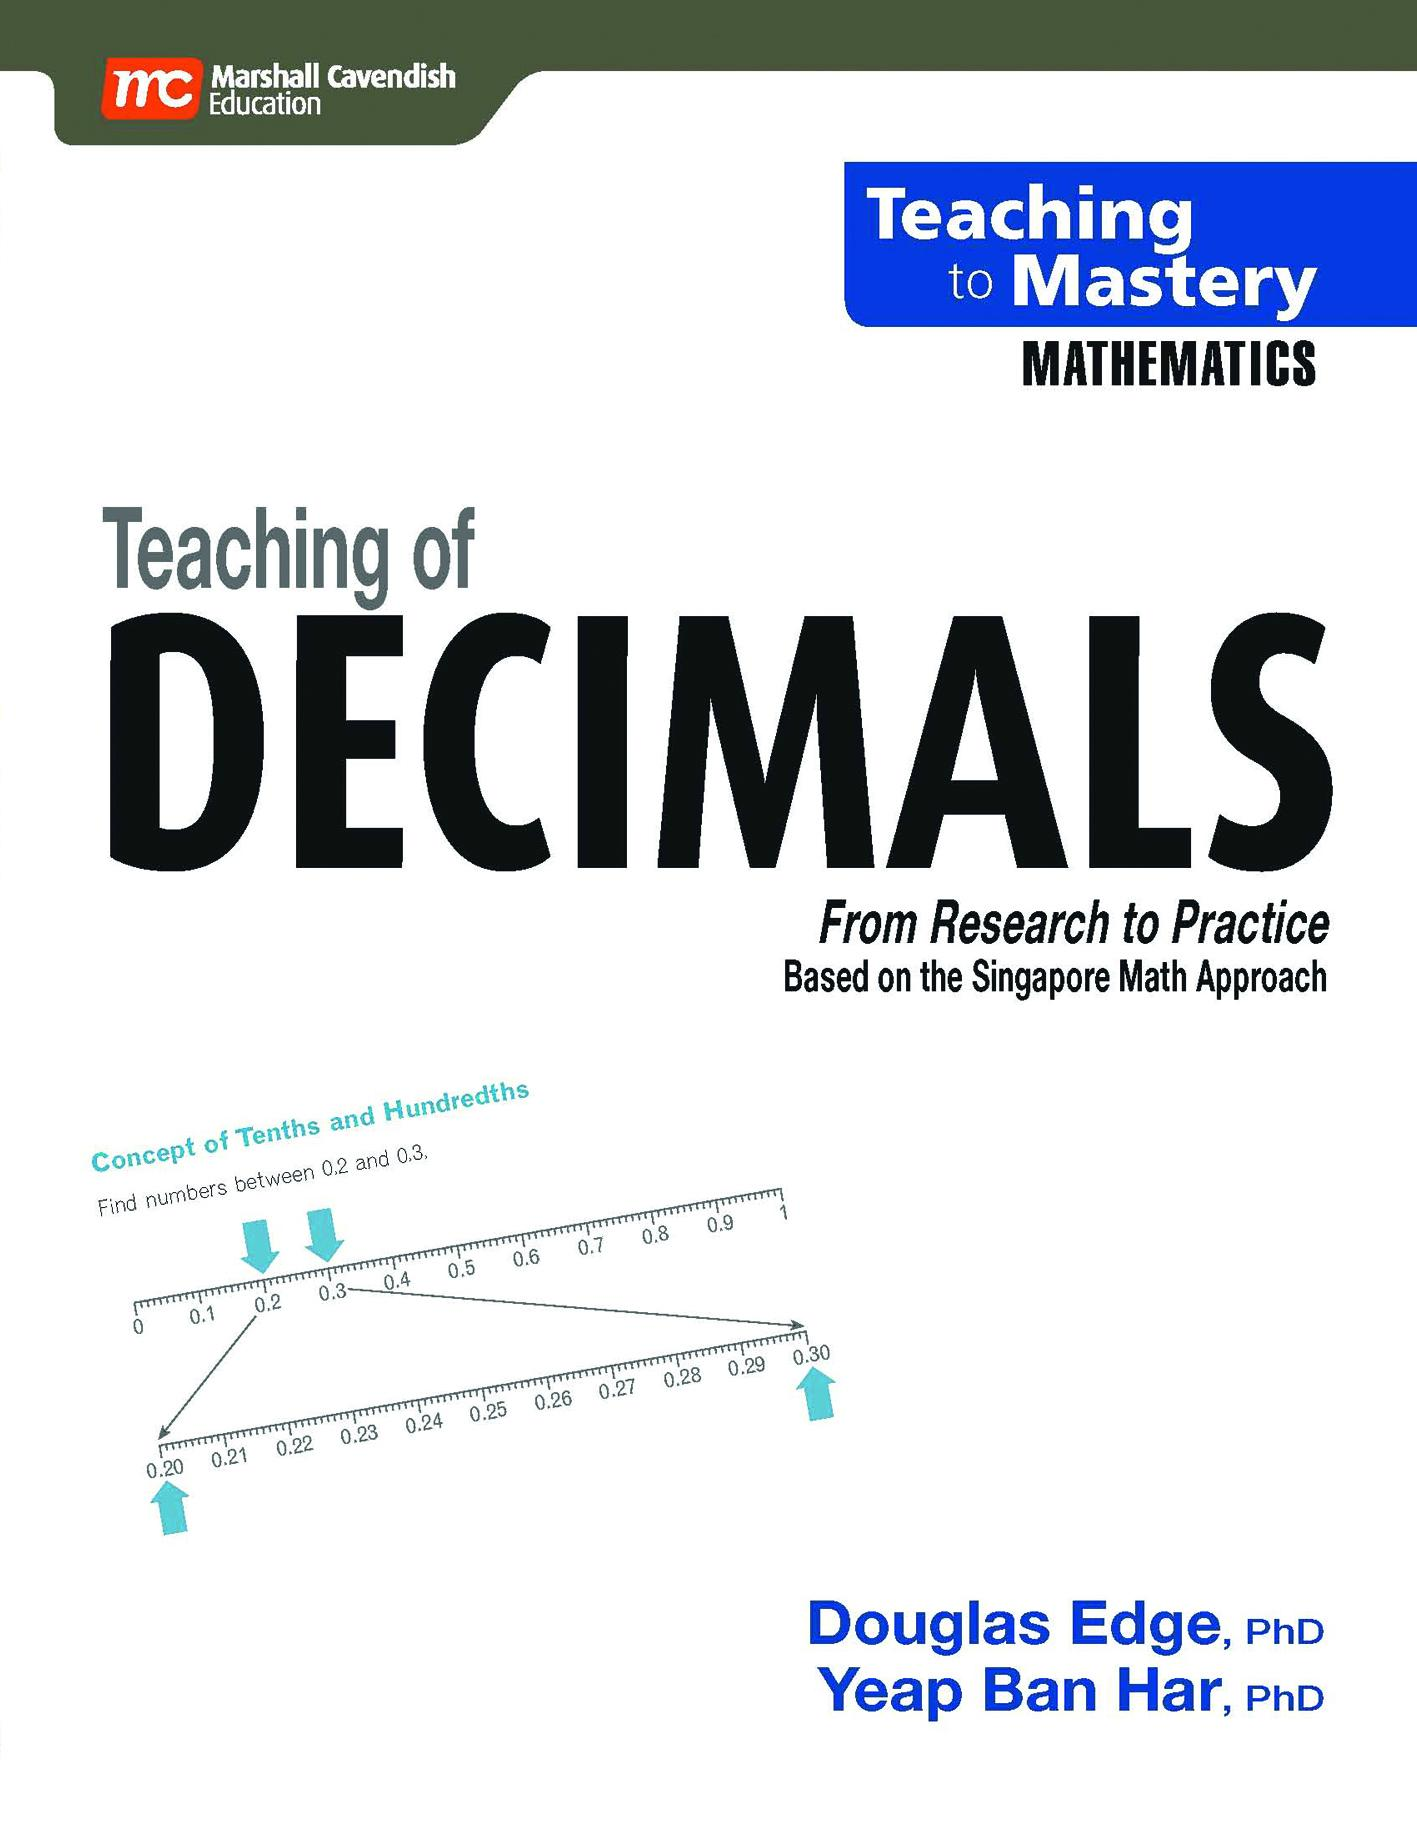 teaching decimals The decimal point is the most important part of a decimal number without it we are lost, and don't know what each position means without it we are lost, and don't know what each position means 17.